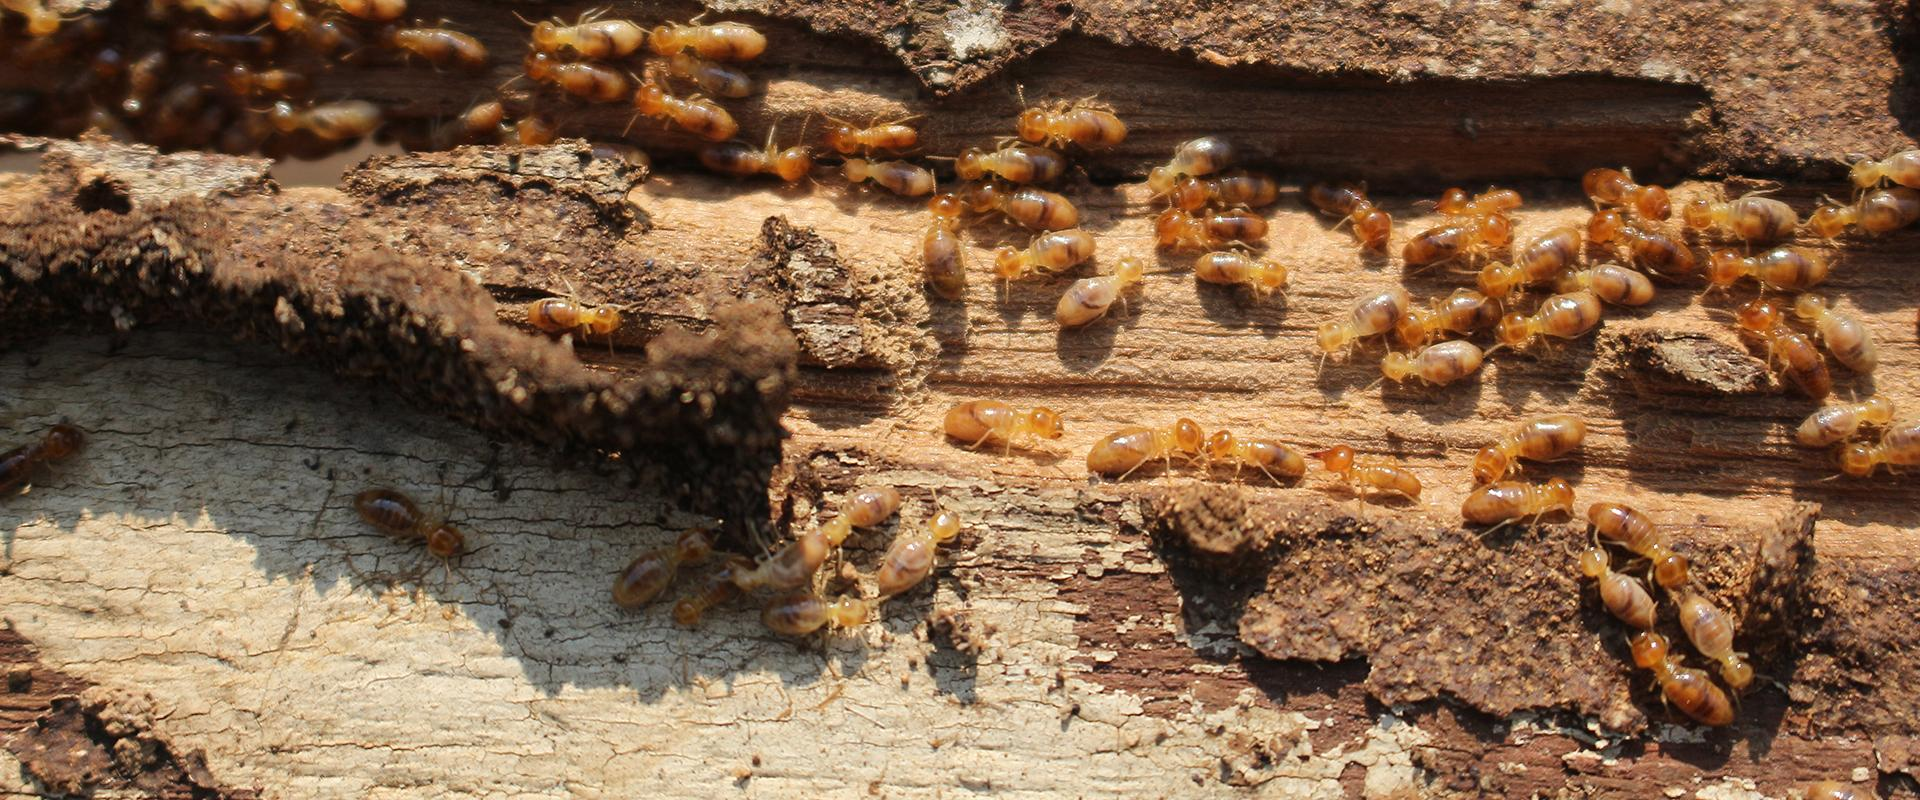 termites on a wooden log